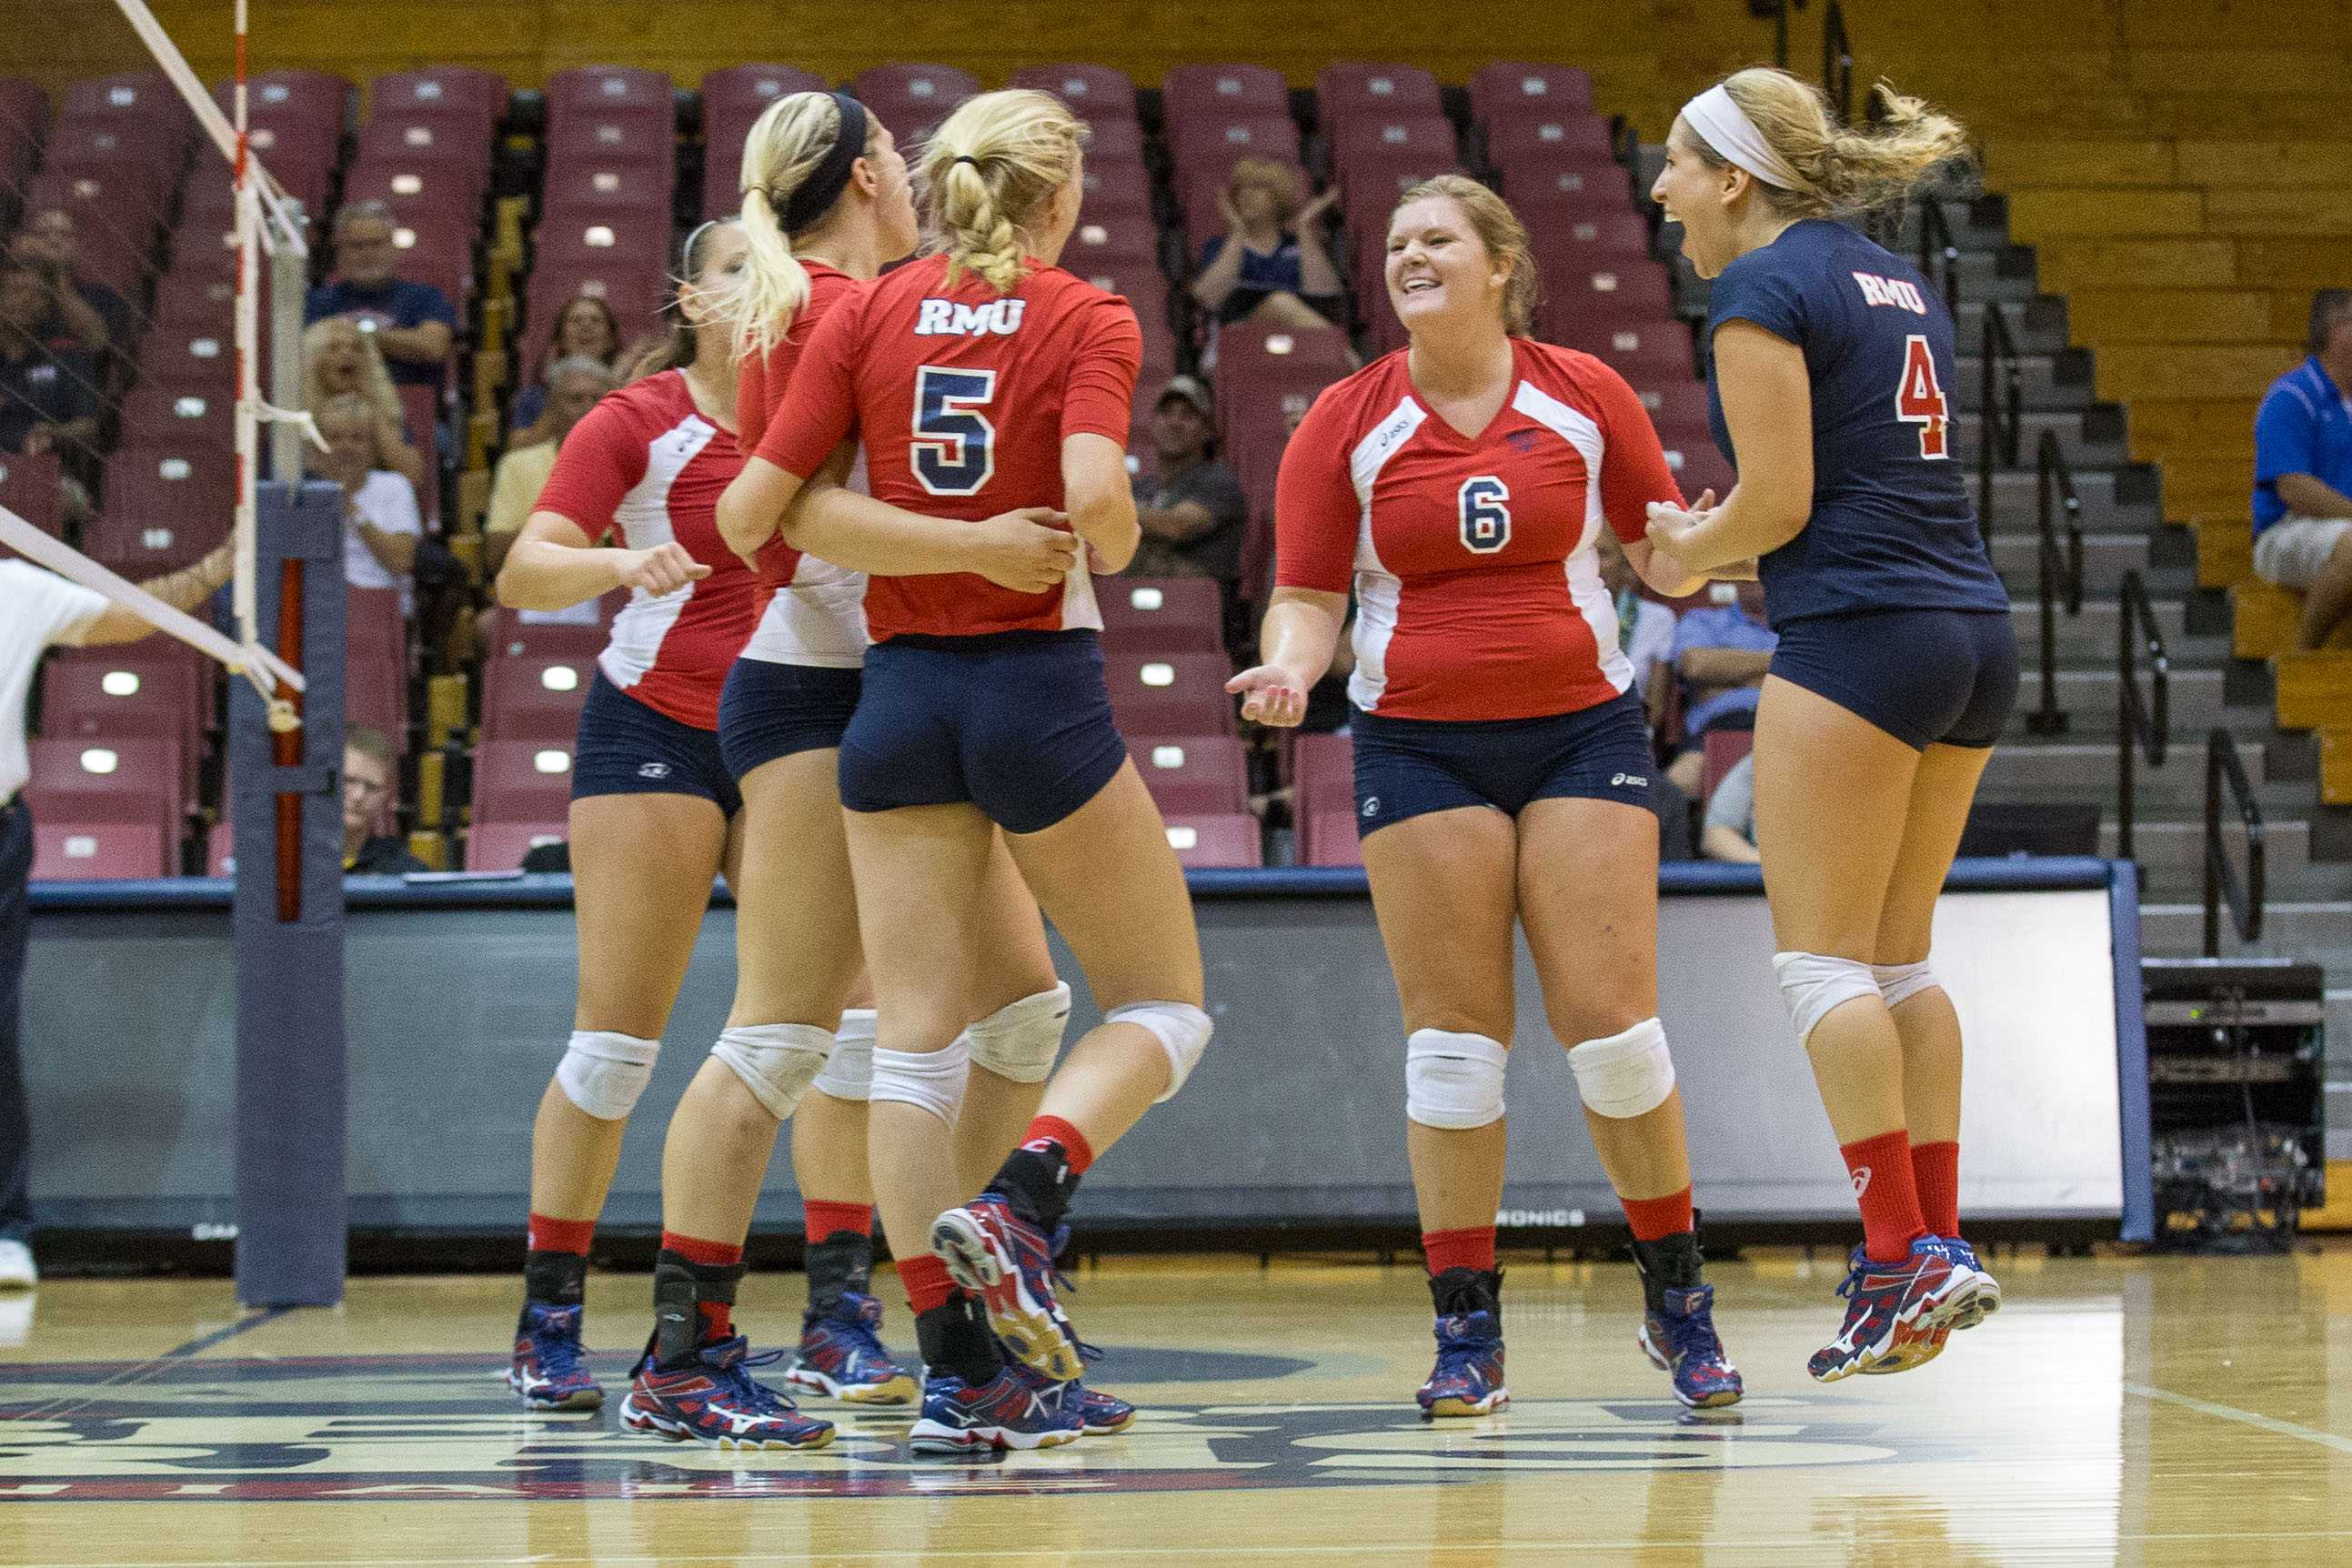 The Colonials used three straight set wins Friday night to defeat The Citadel and earn their first win of the season.